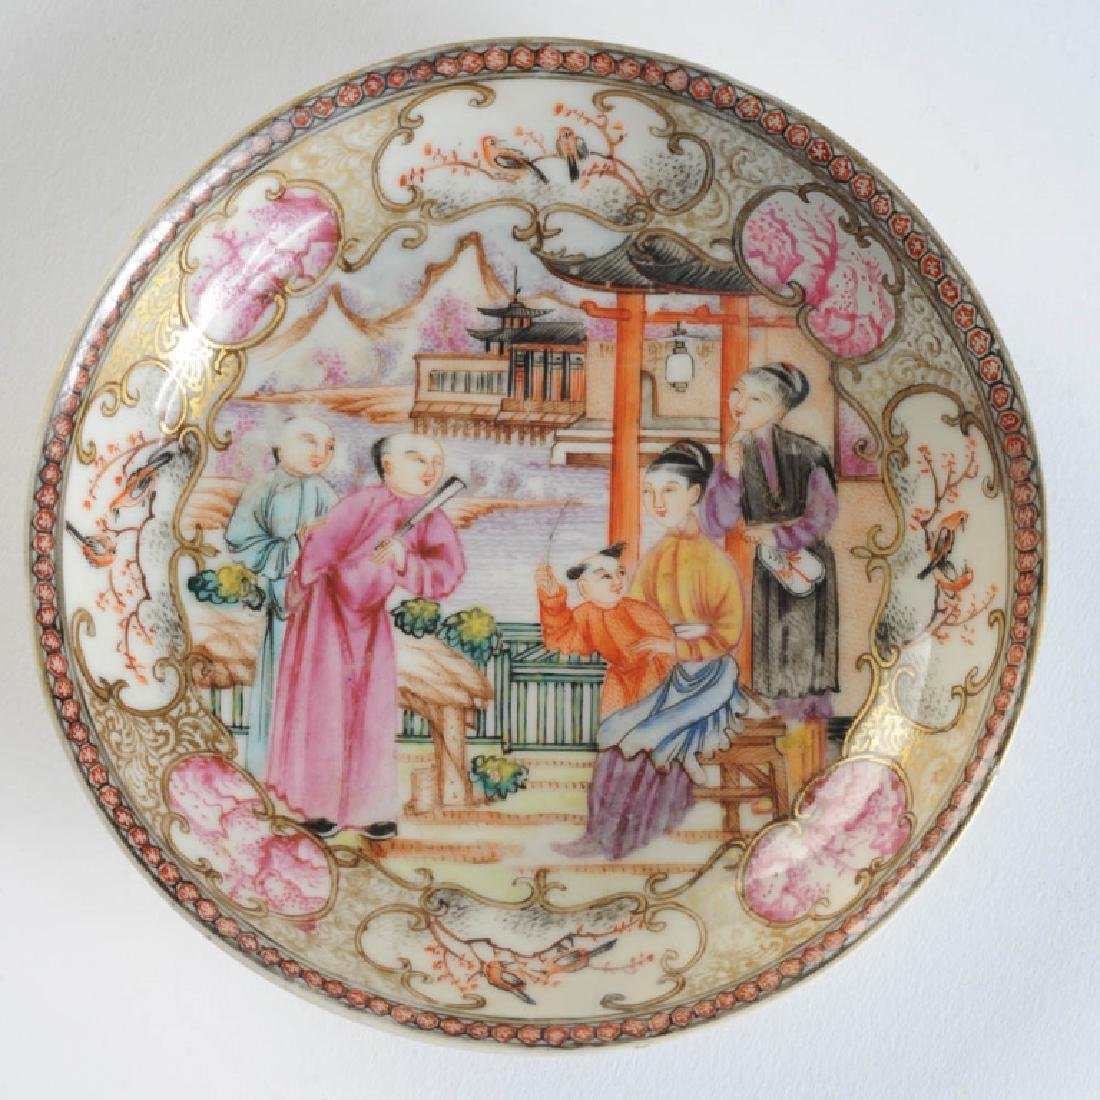 18th C. Chinese Export Small Plate or Saucer